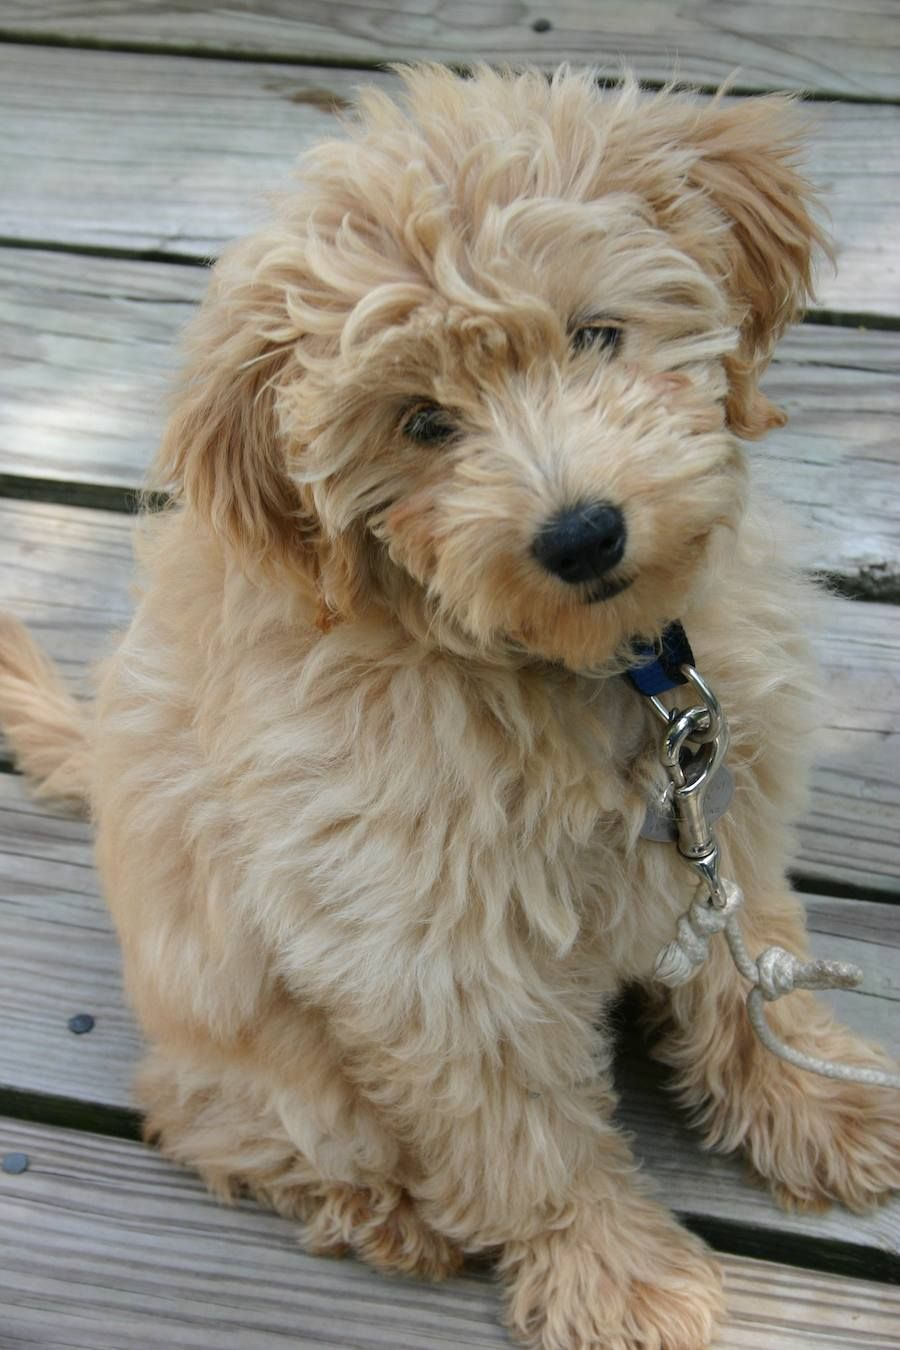 It's a baby mini goldendoodle...so stink cute. puppies